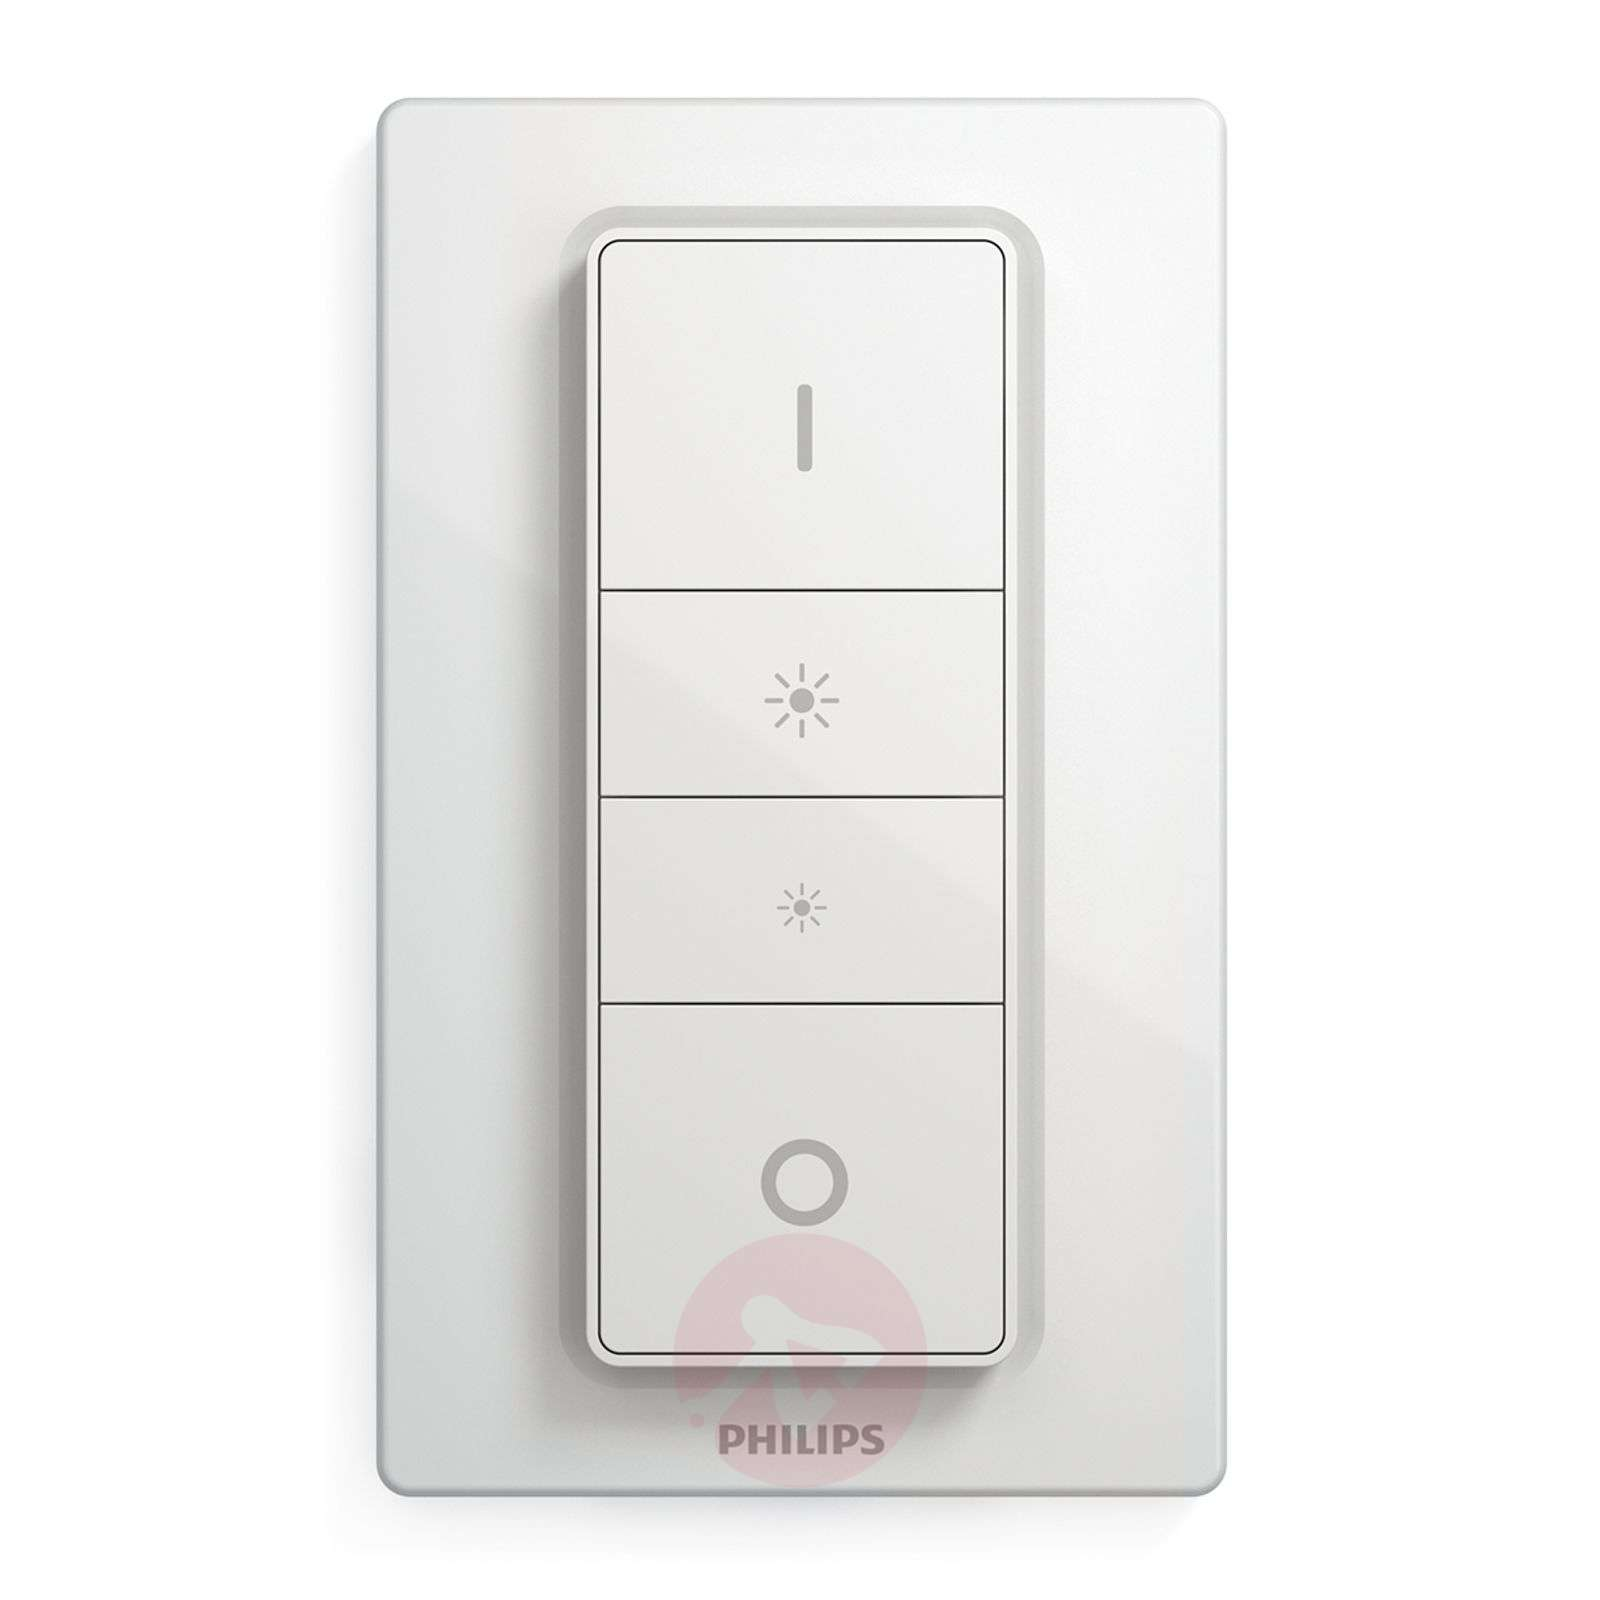 Philips Hue Runner faretto dimmer a 3 luci bianco-7531893-01